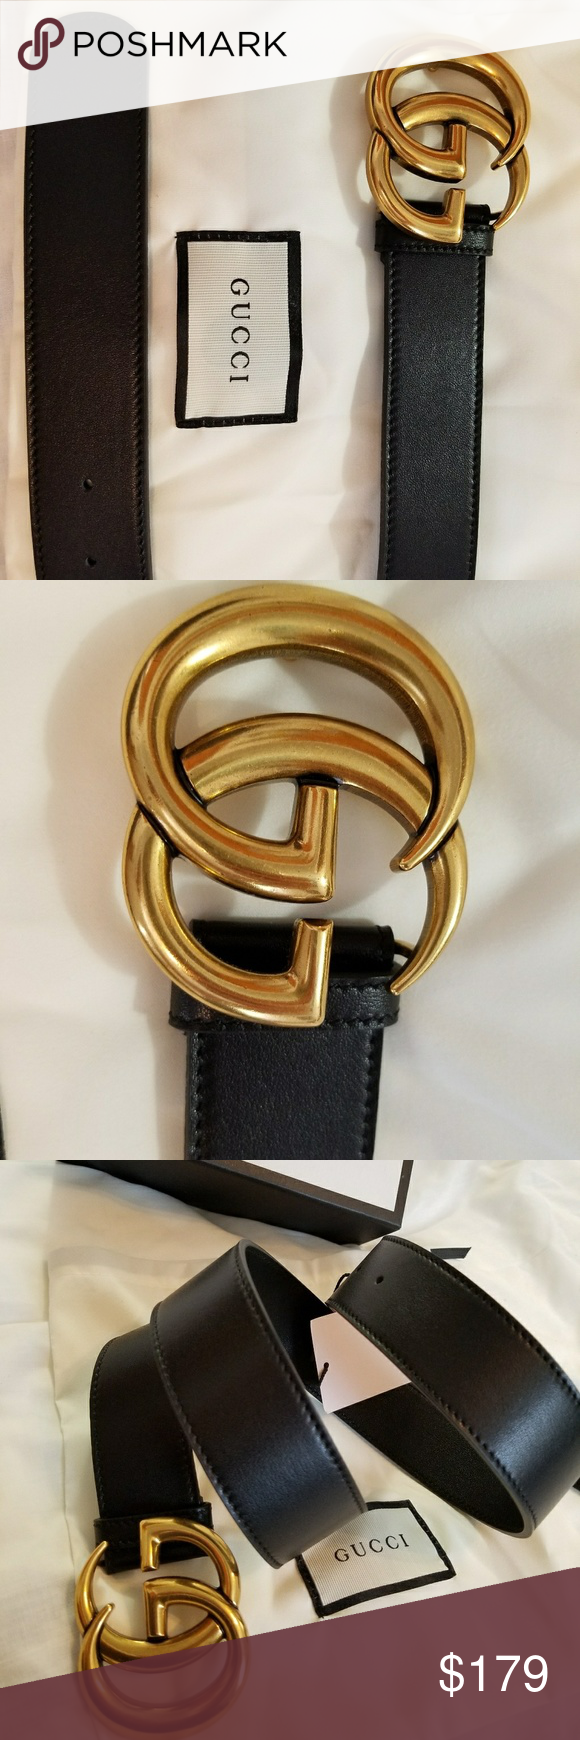 bd935824a6e 🤗Authentic Gucci Belt Black Leather Gold Brass 🤗Authentic Gucci Belt Black  Leather with Gold Brass GG Buckle. Nice looking belt.